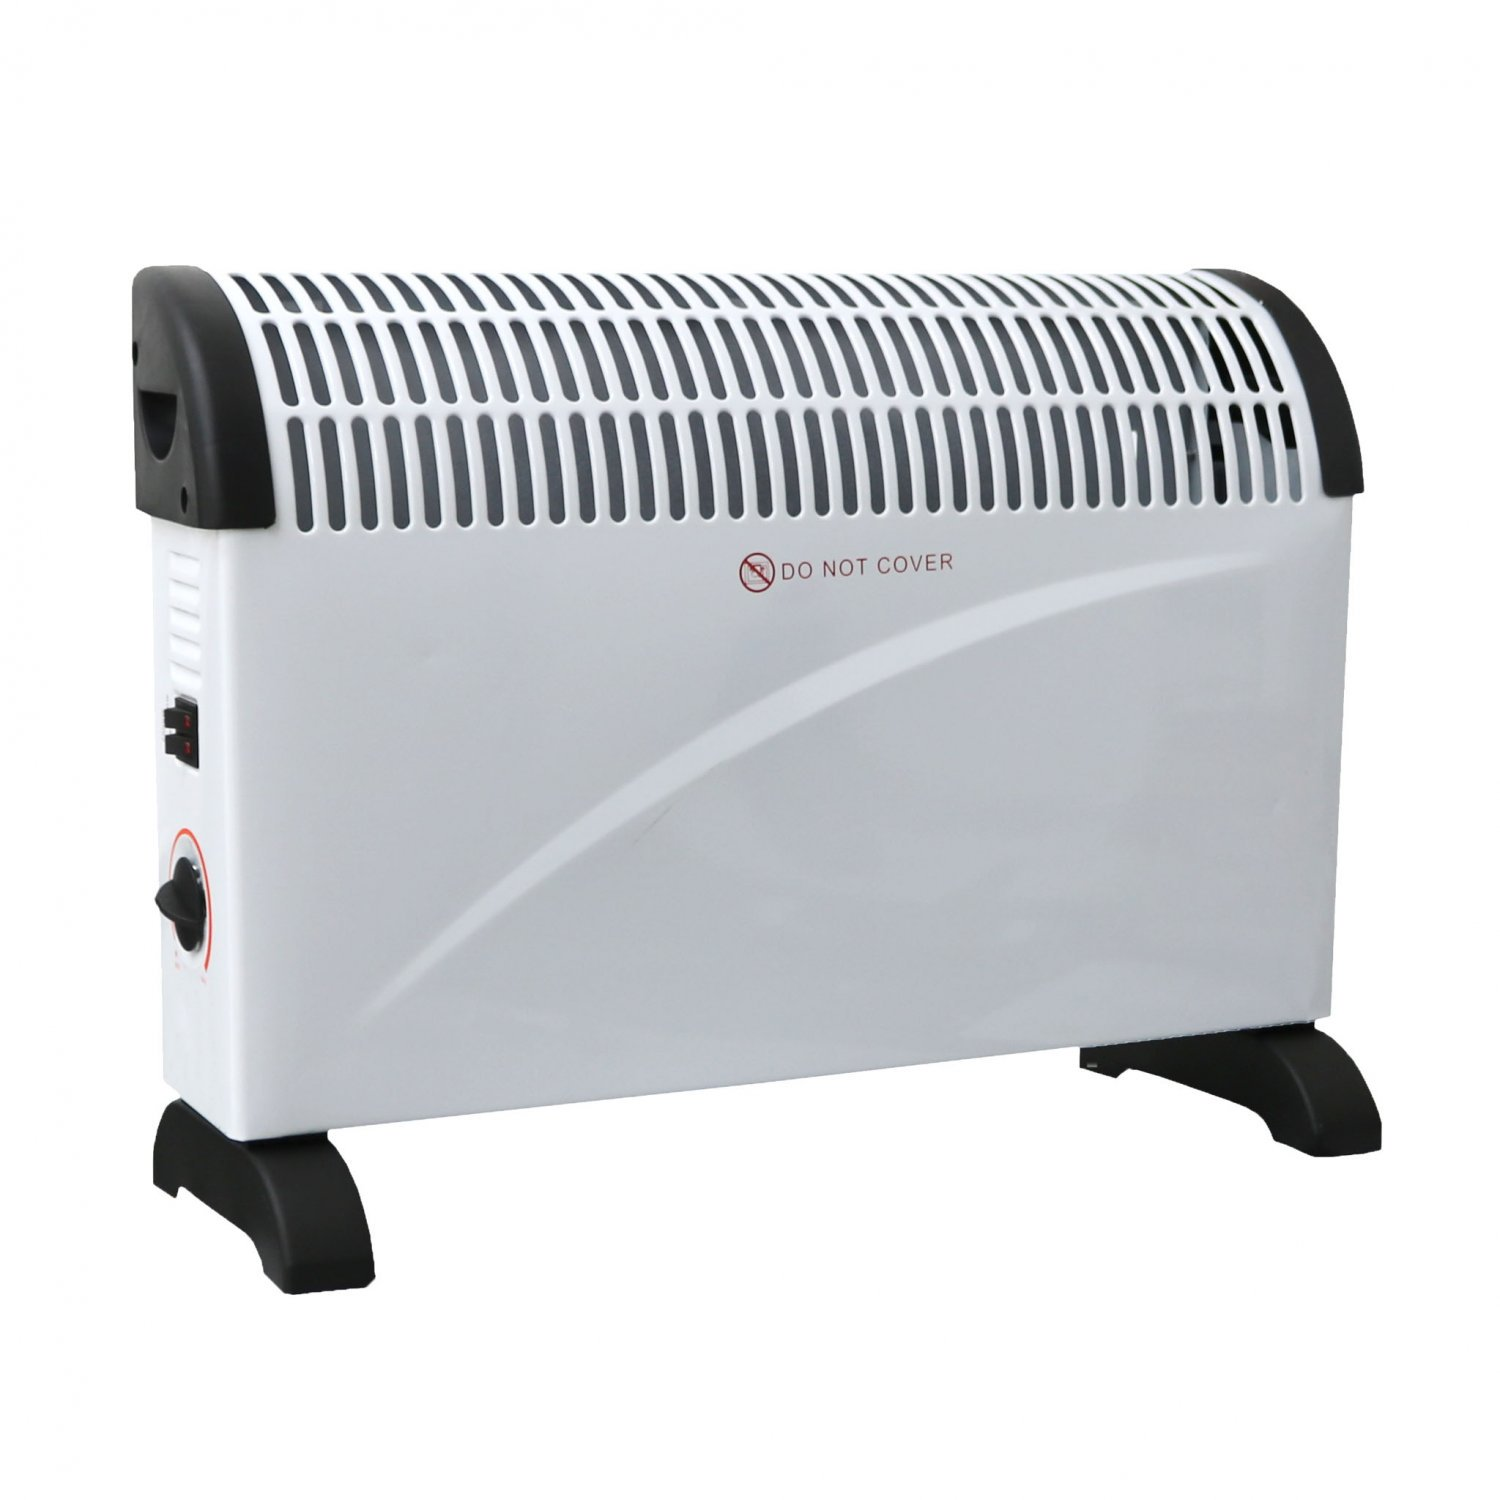 2 KW Free Standing Convector Heater